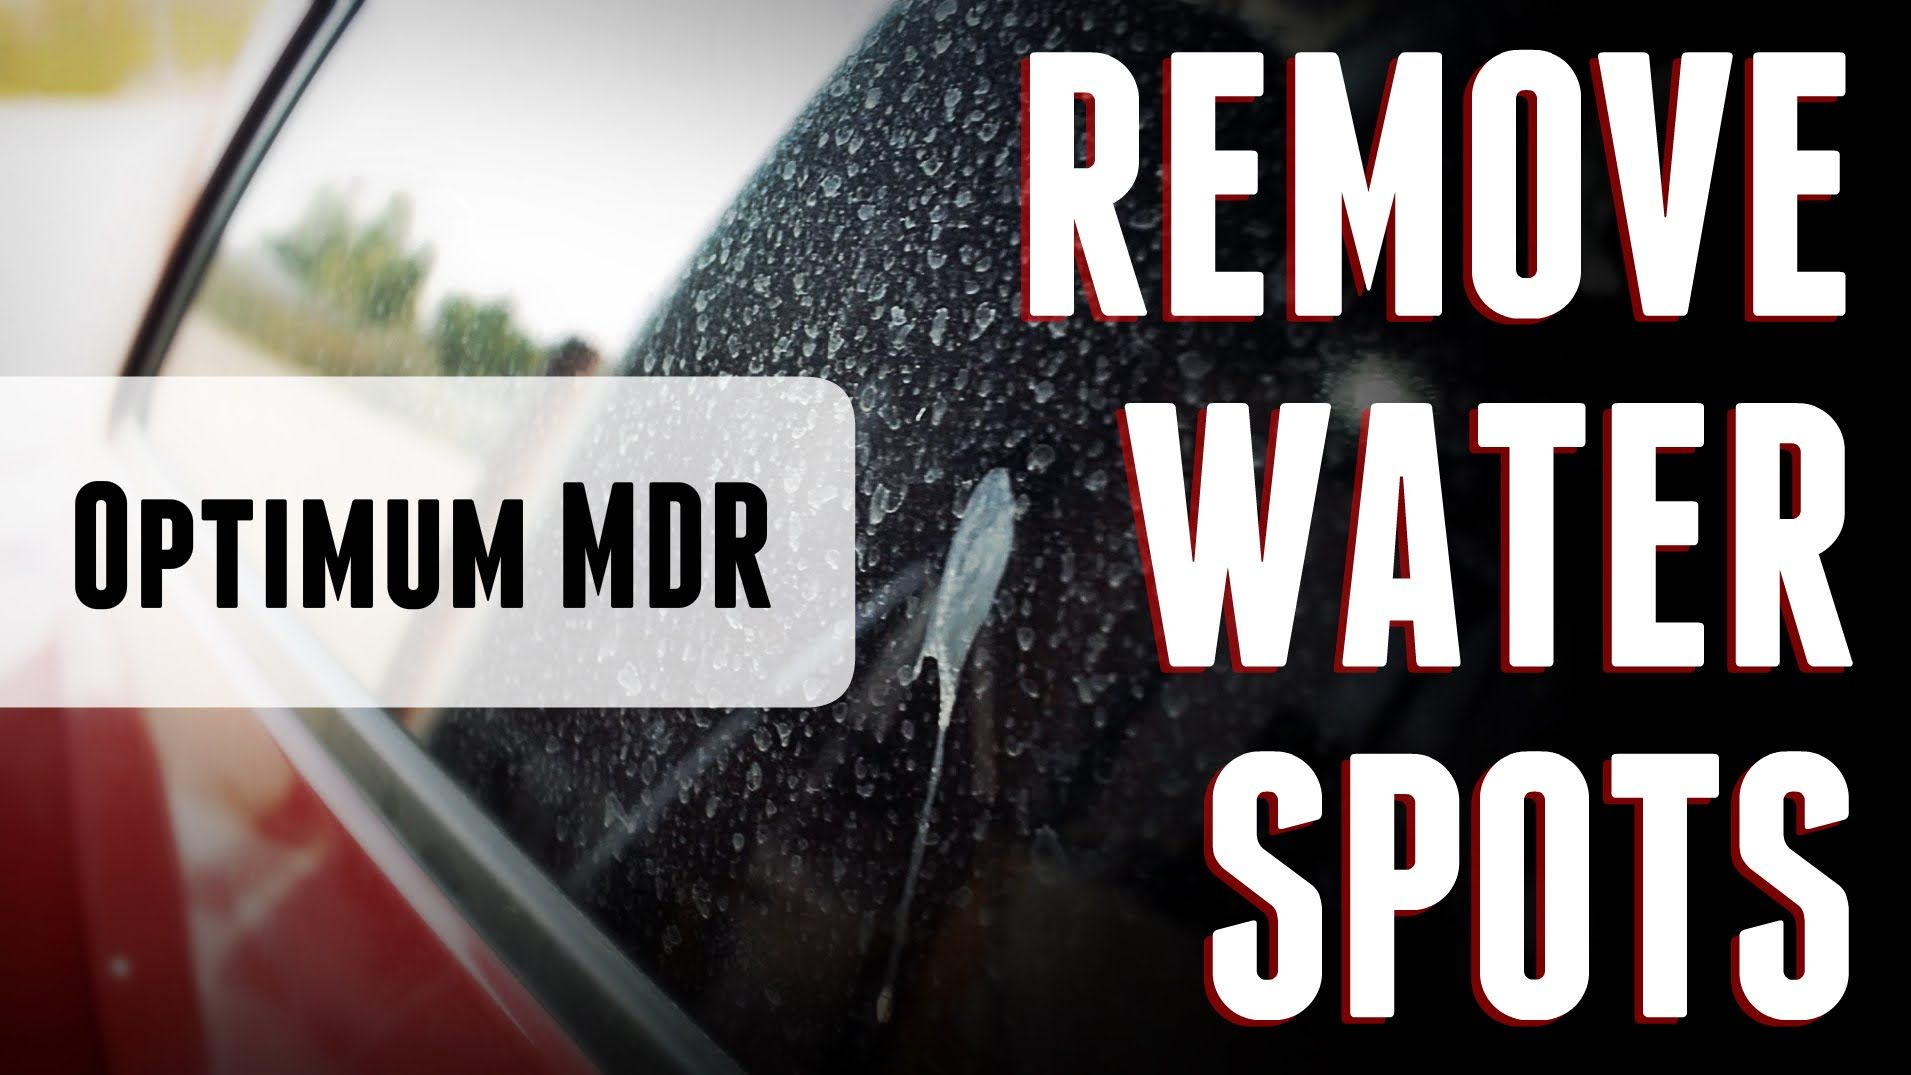 REMOVE WATER SPOTS How To Properly Use Optimum MDR